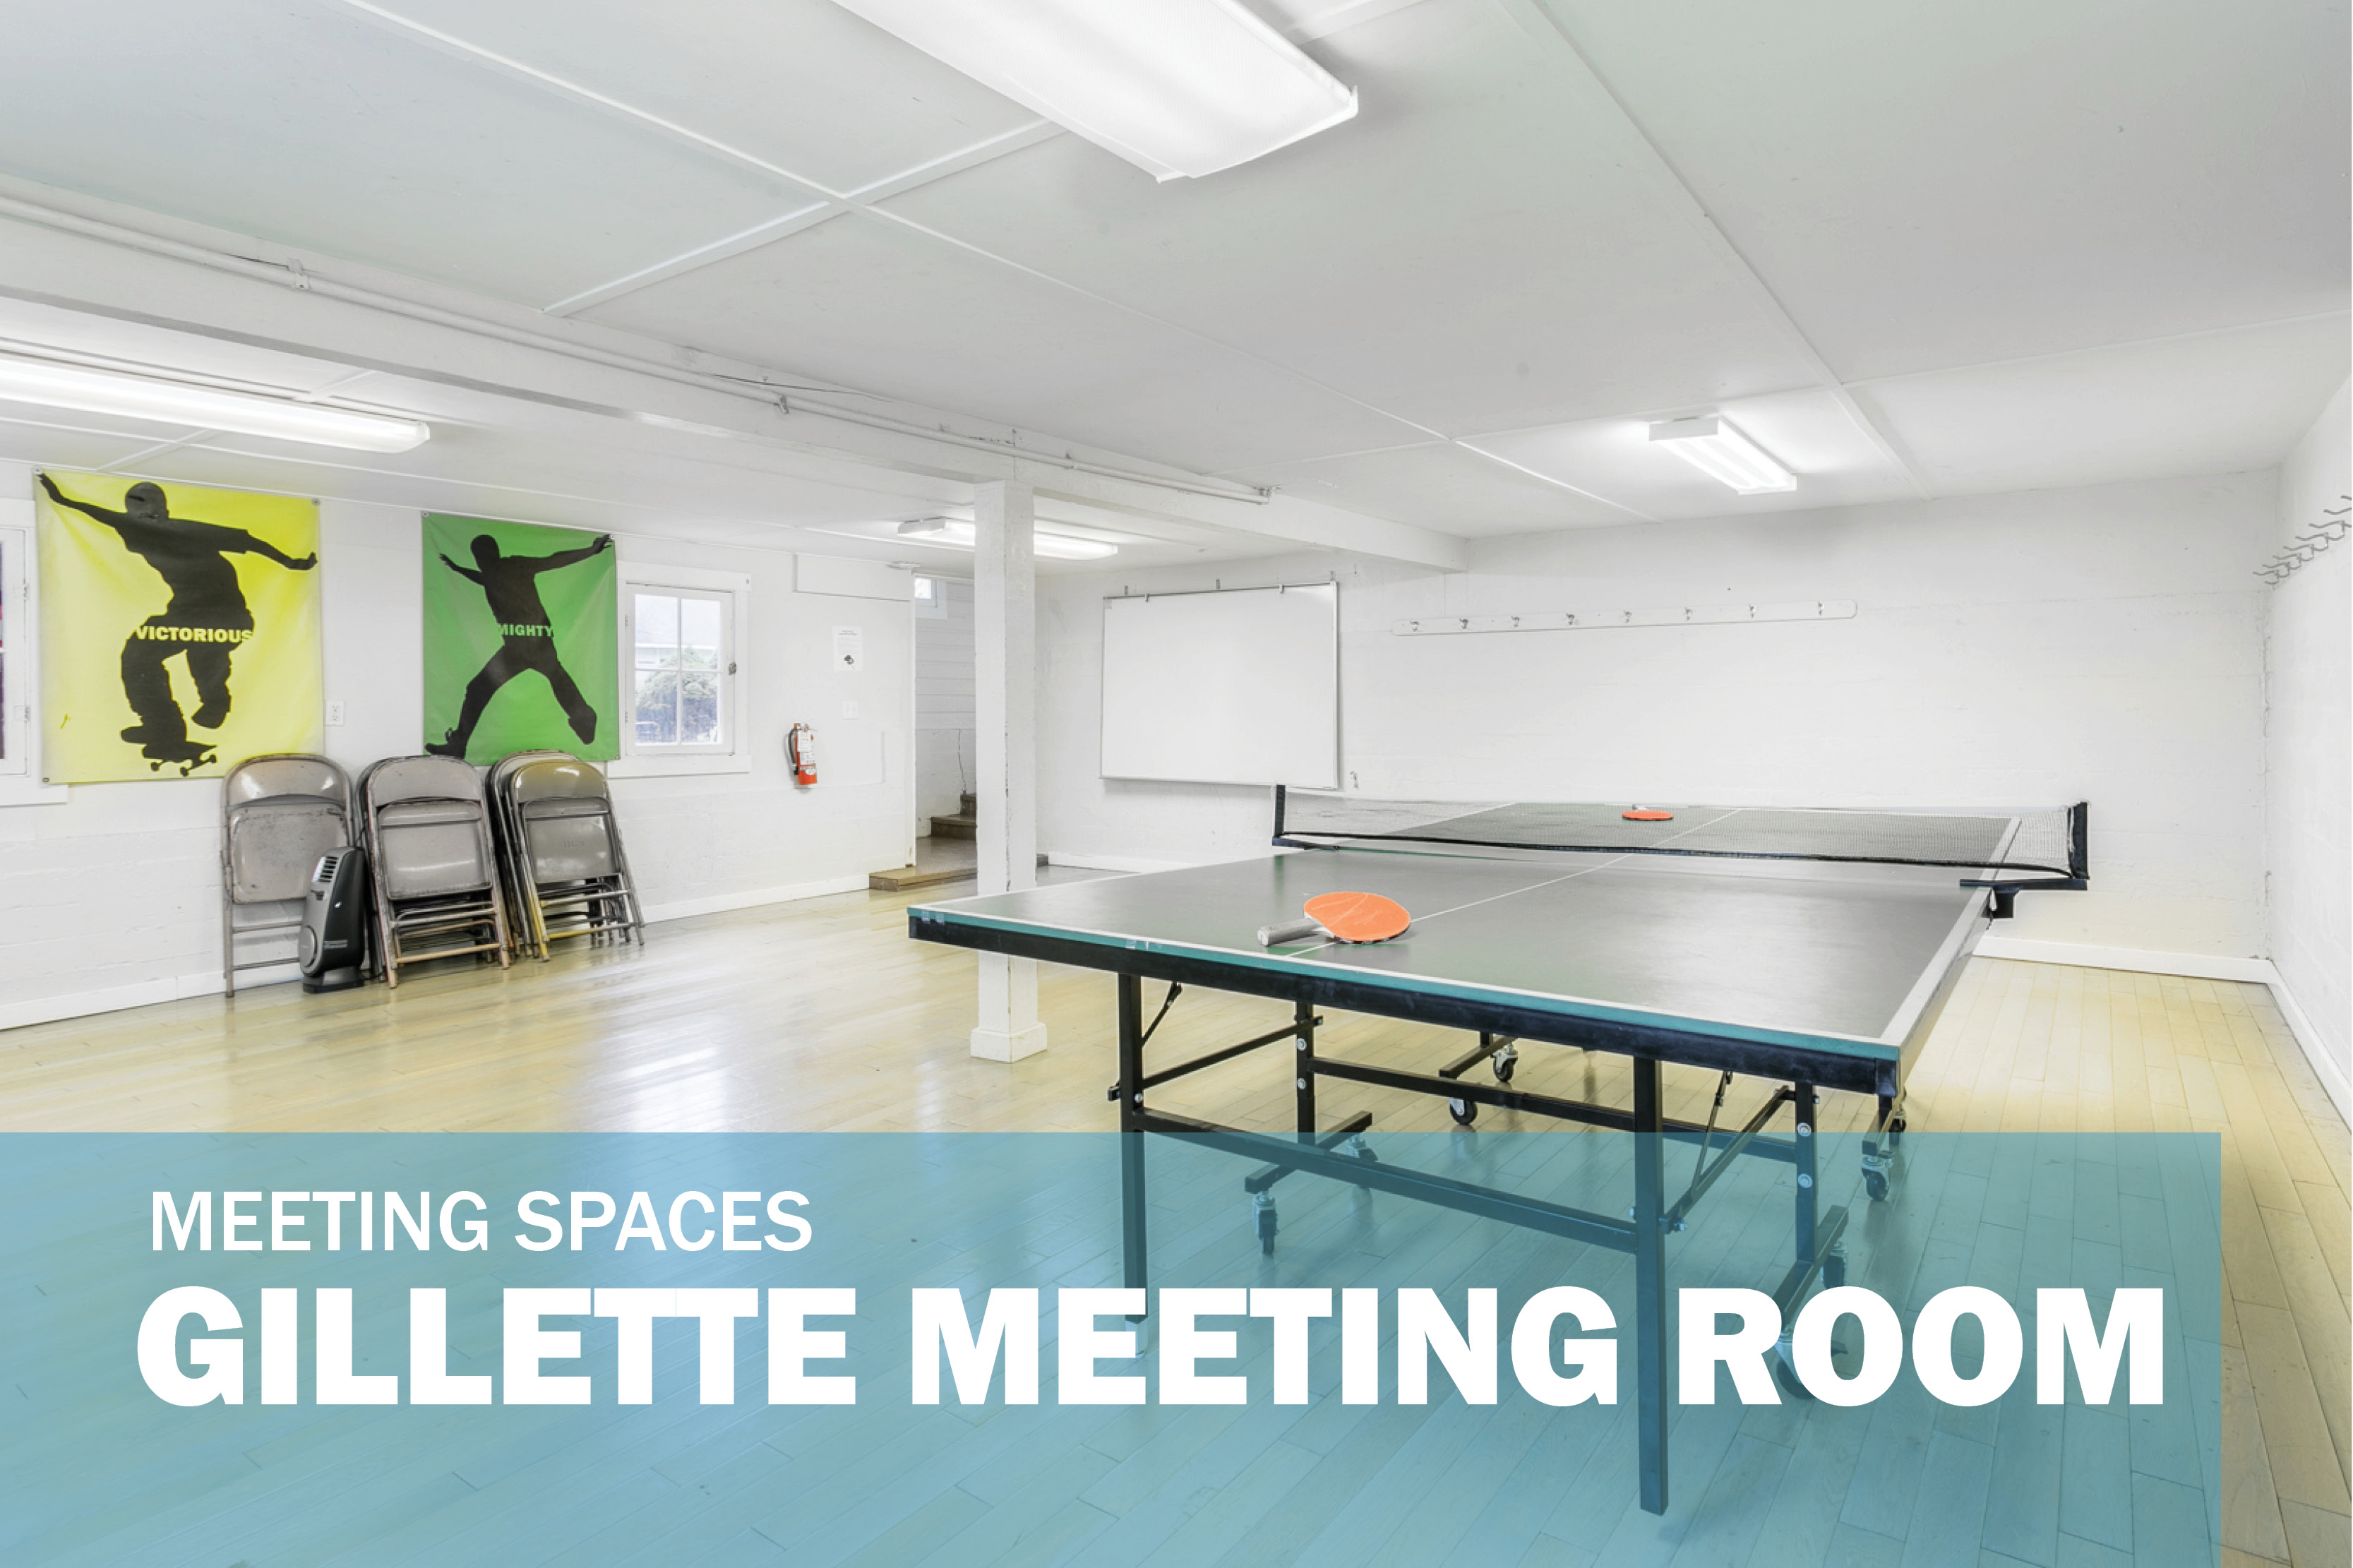 GILLETTE MEETING ROOM